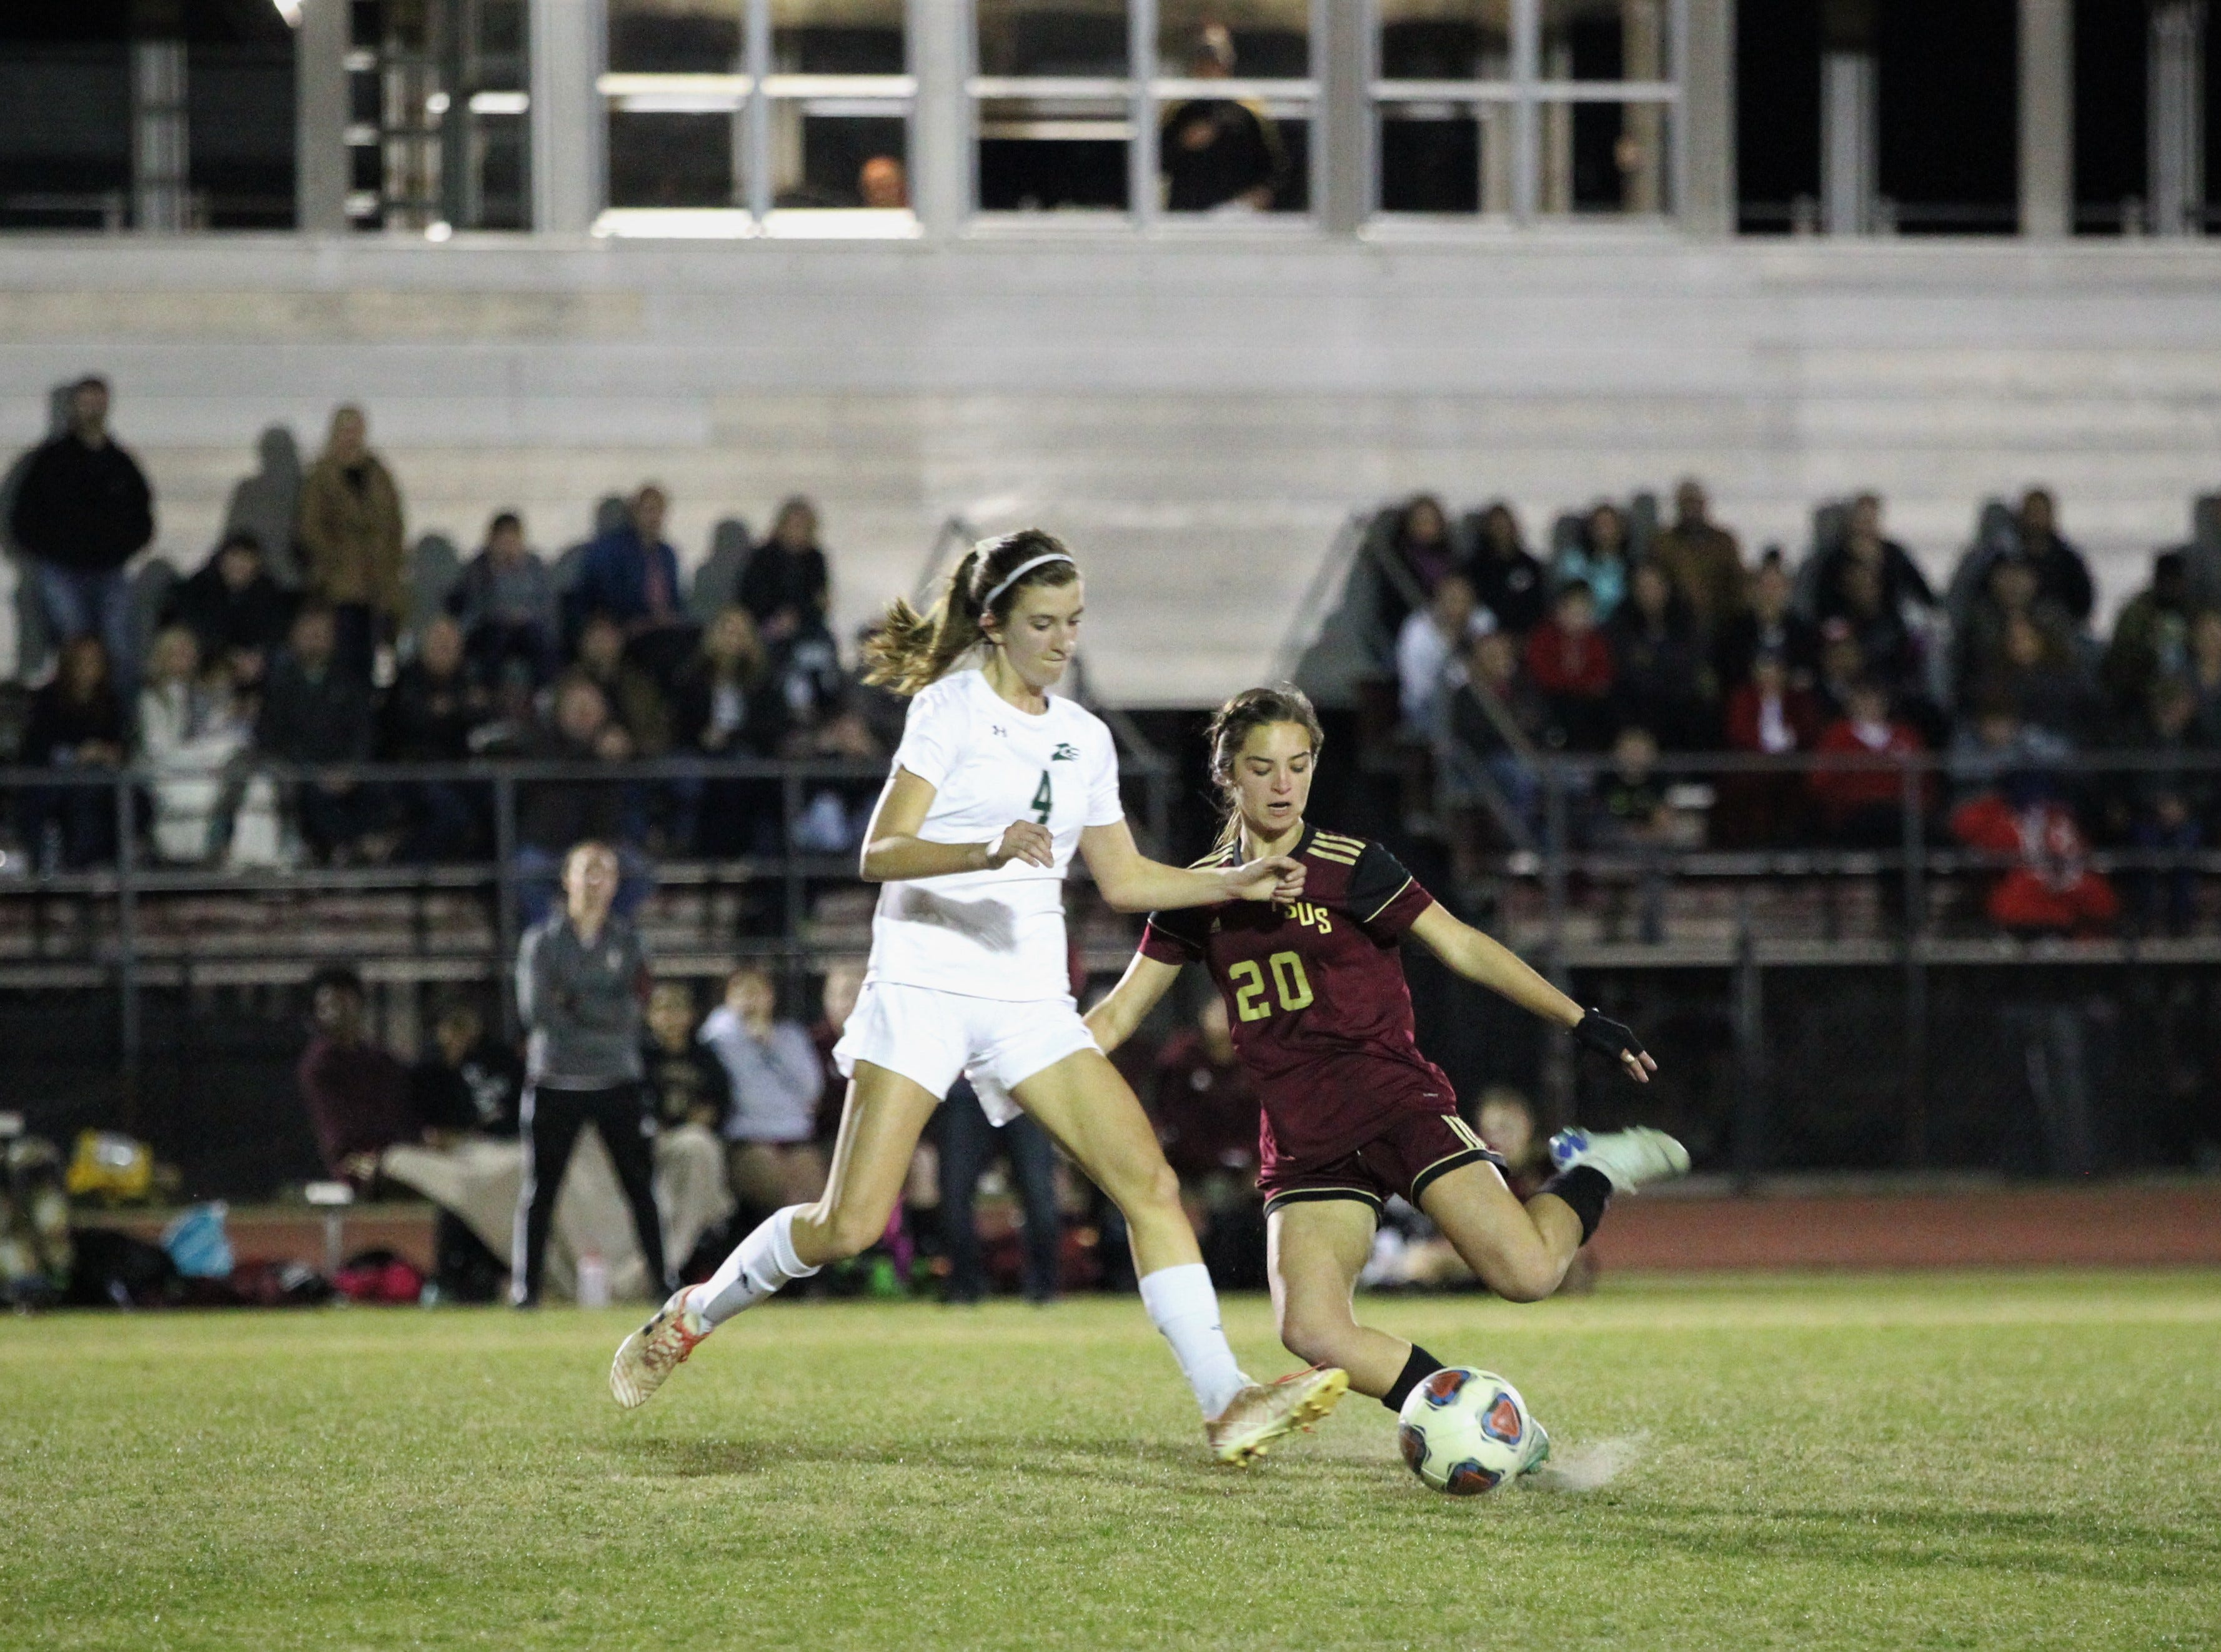 Florida High's Caroline Hamon sets up for a pass as South Walton edged the Seminoles 5-4 in a penalty-kick shootout during a Region 1-2A semifinal on Feb. 8, 2019.